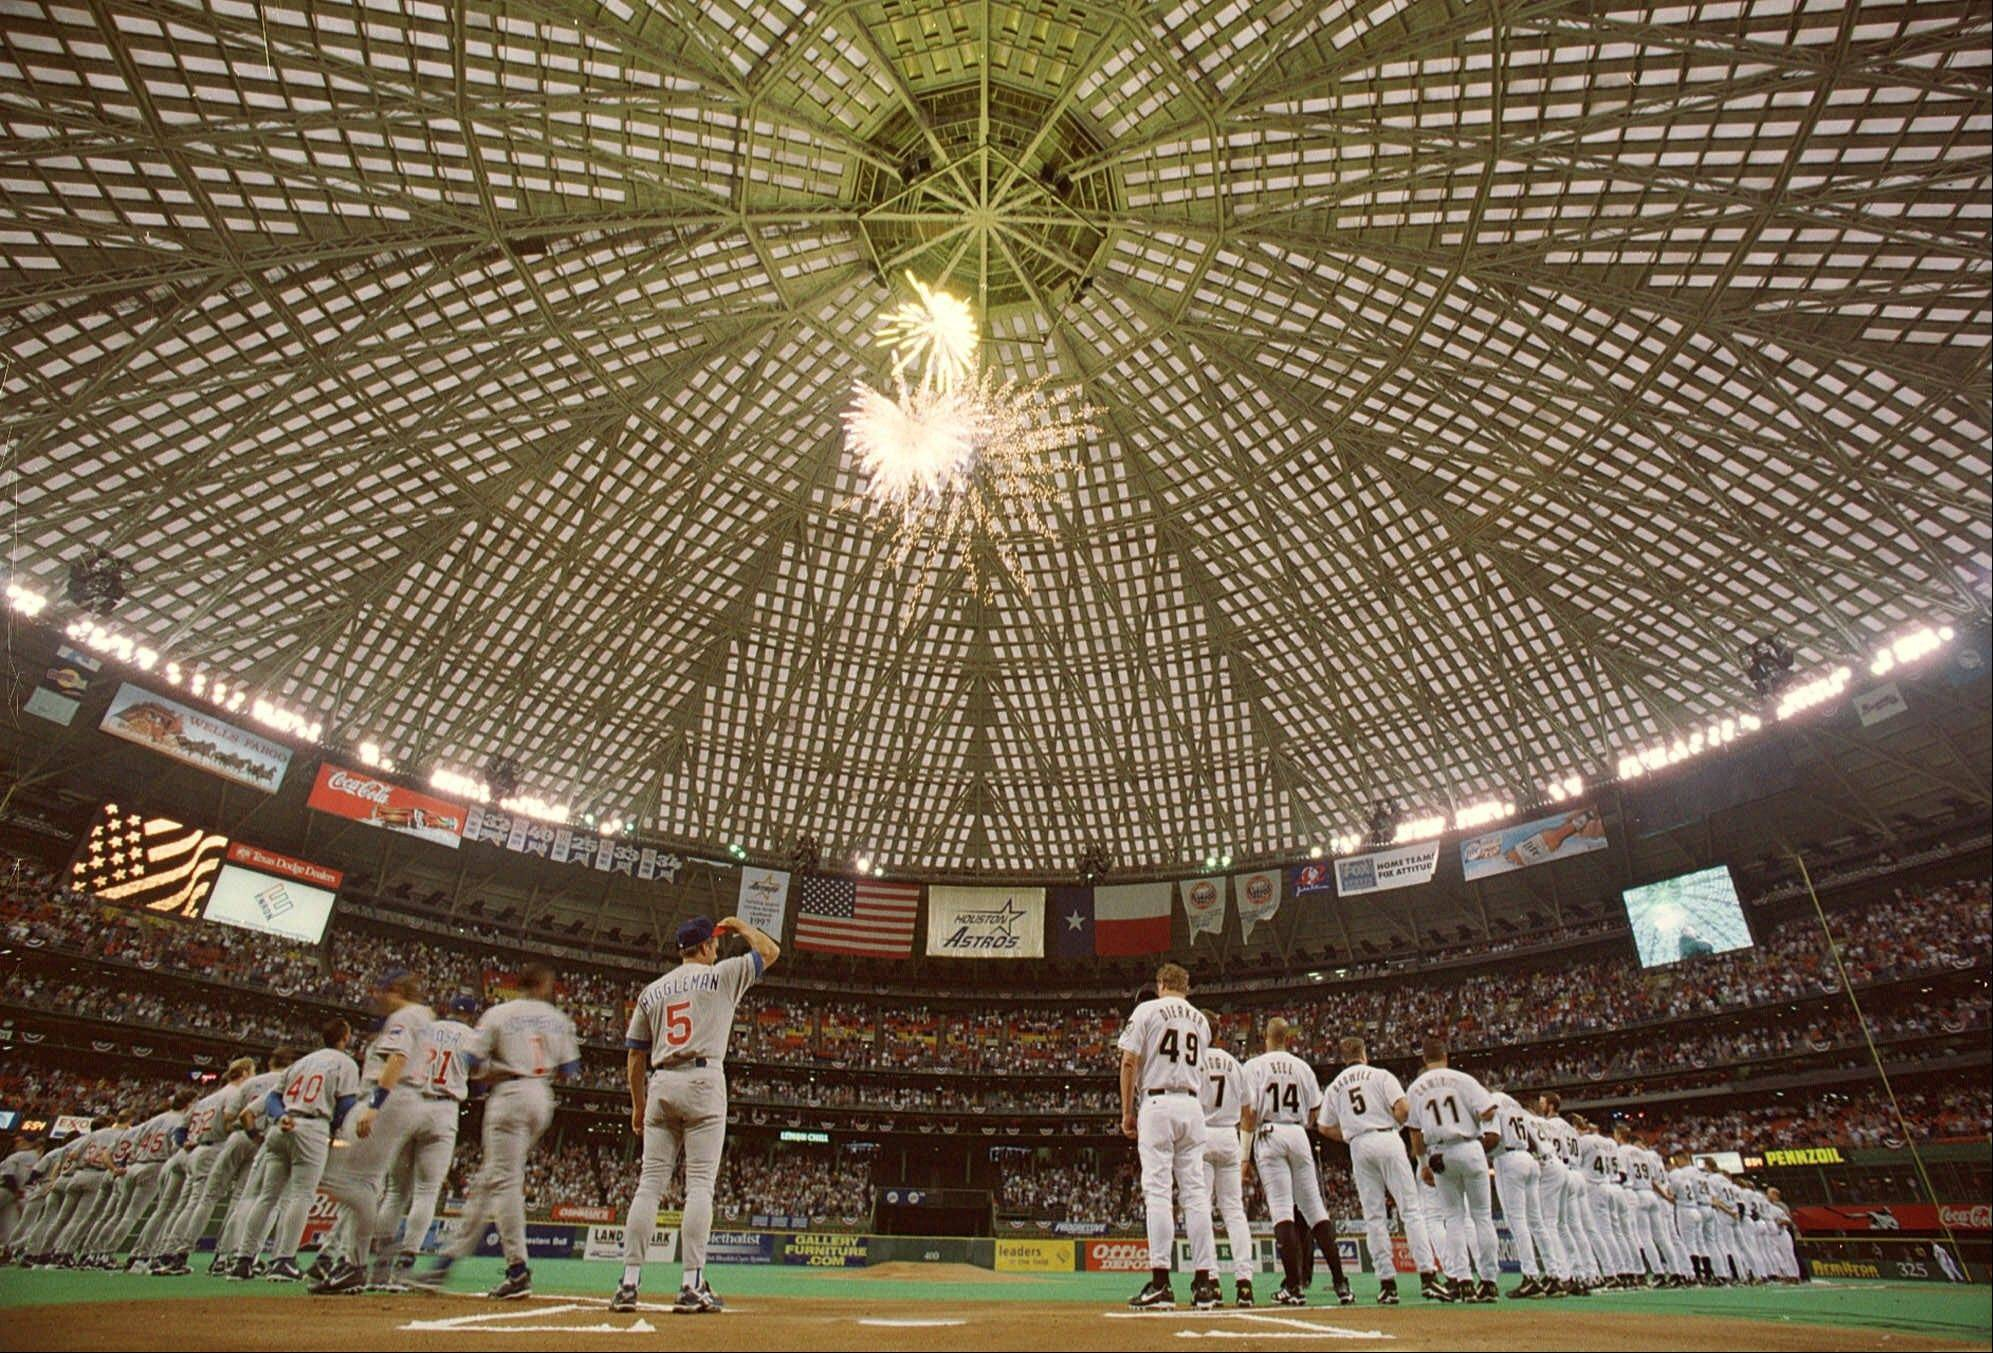 Fireworks explode in the Astrodome as the Cubs, left, and Houston Astros lined up before the start of the last season opener to be played in the Astrodome, Tuesday, April 6, 1999, in Houston.